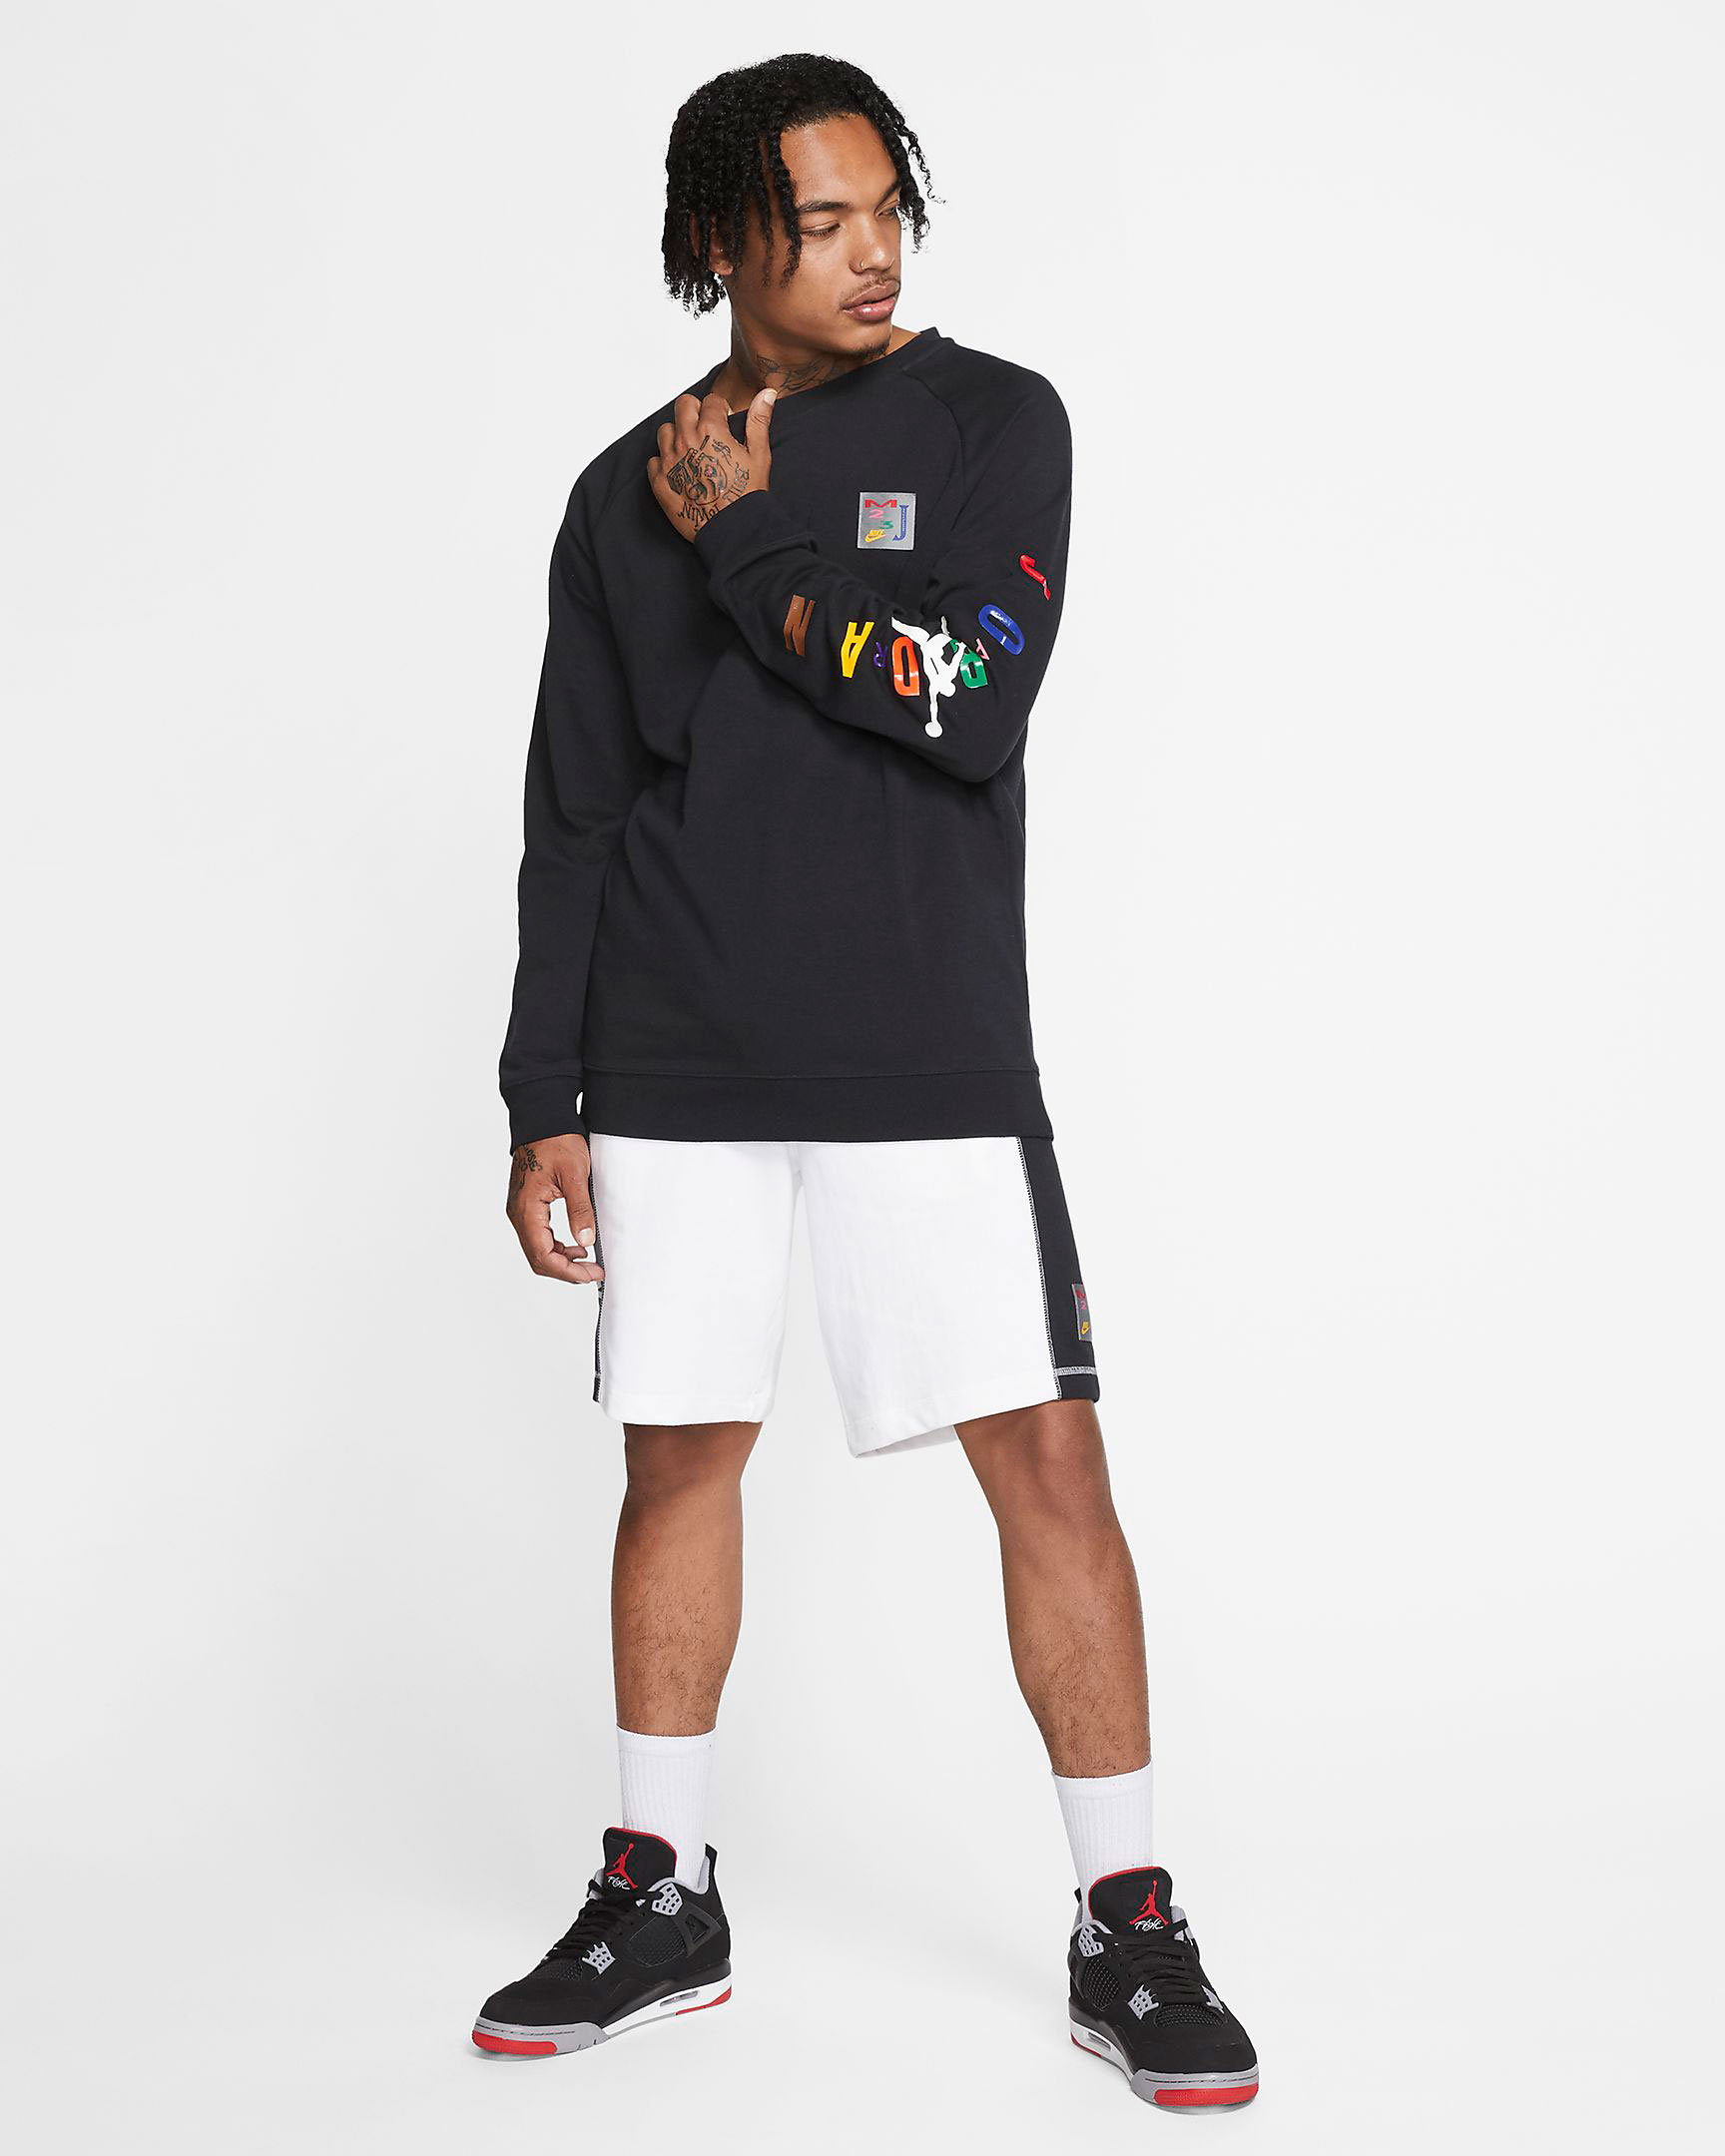 jordan-sport-dna-multi-color-crew-sweatshirt-3